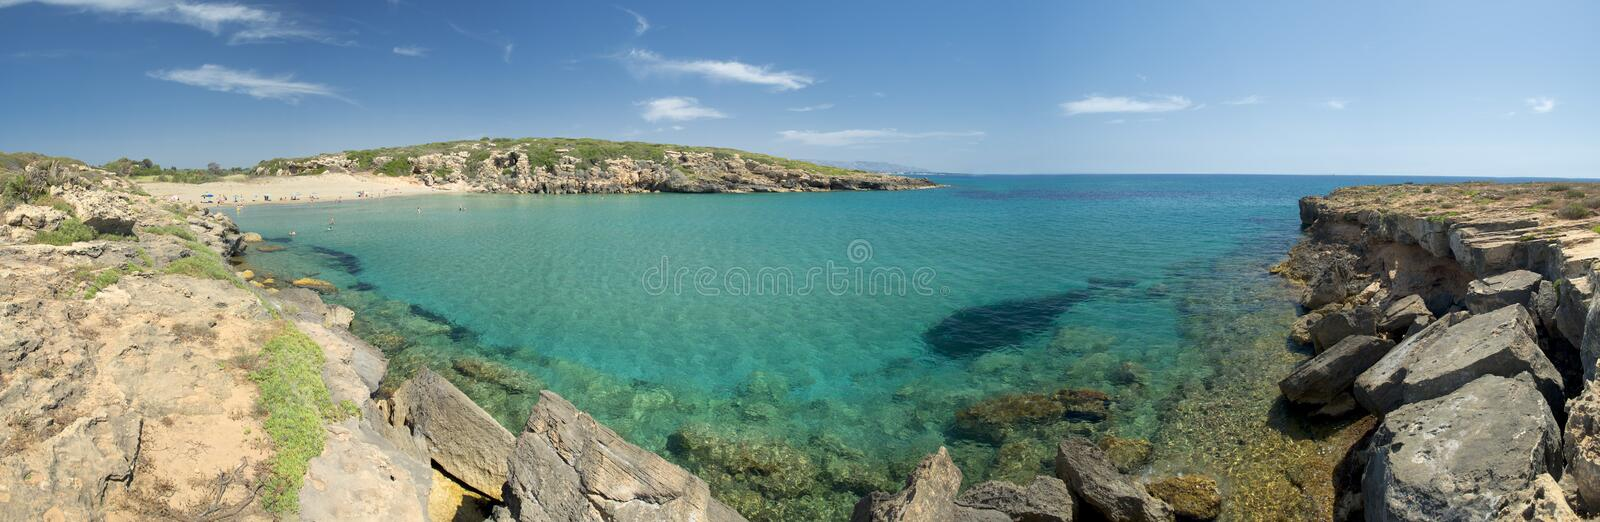 Wonderful Sicilia sandy Beach stock photos